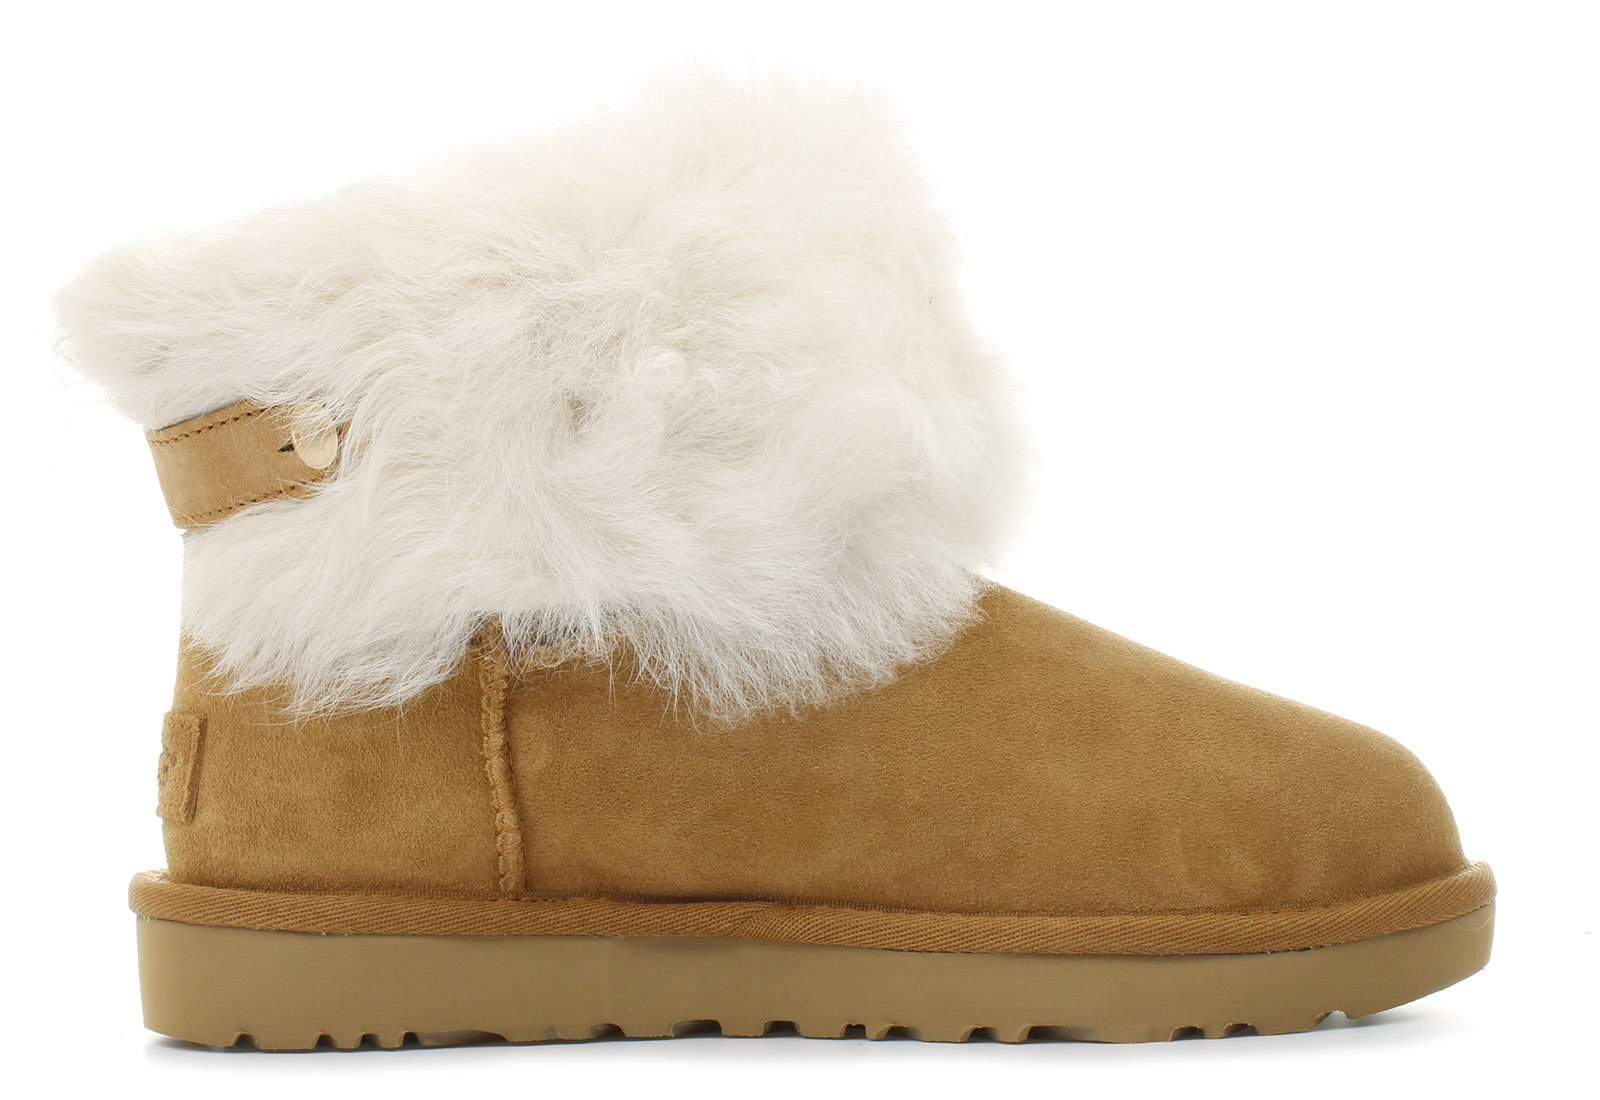 fcf35027e9b Ugg Boots - Valentina - 1012388-che - Online shop for sneakers, shoes and  boots